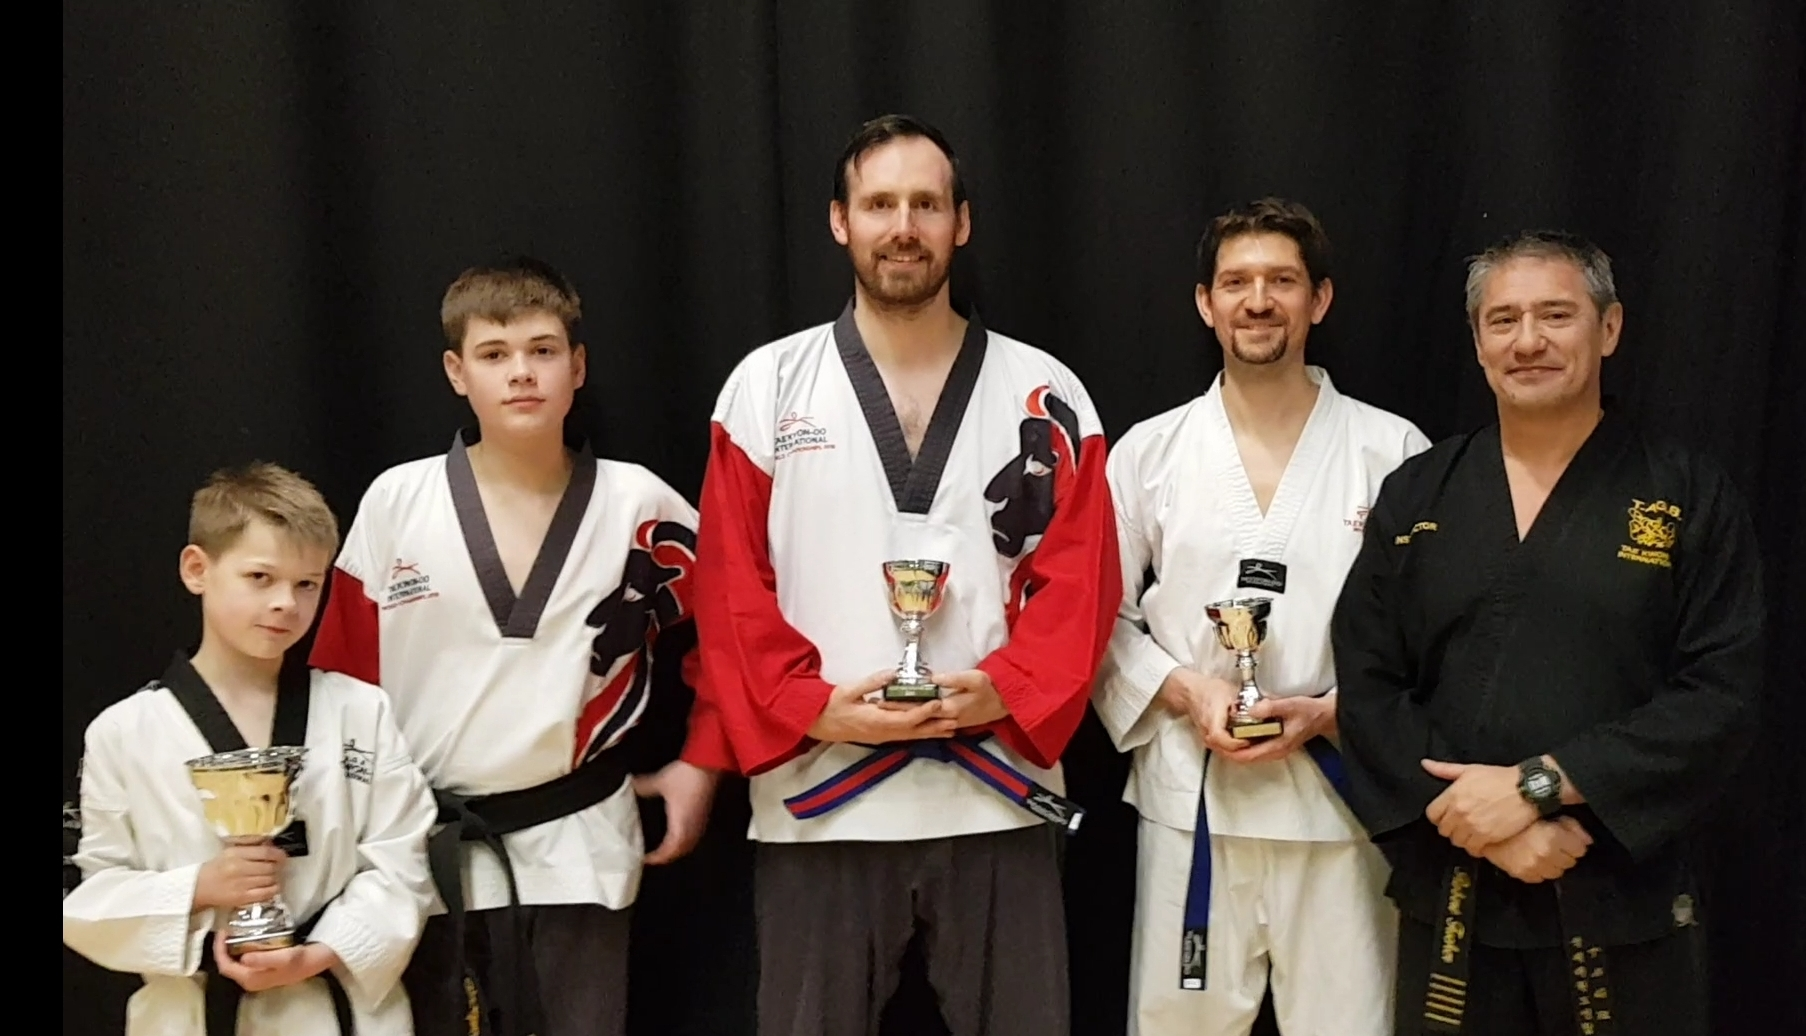 Trowbridge TAGB Tae Kwon Do instructor Rob Tucker with his successful students